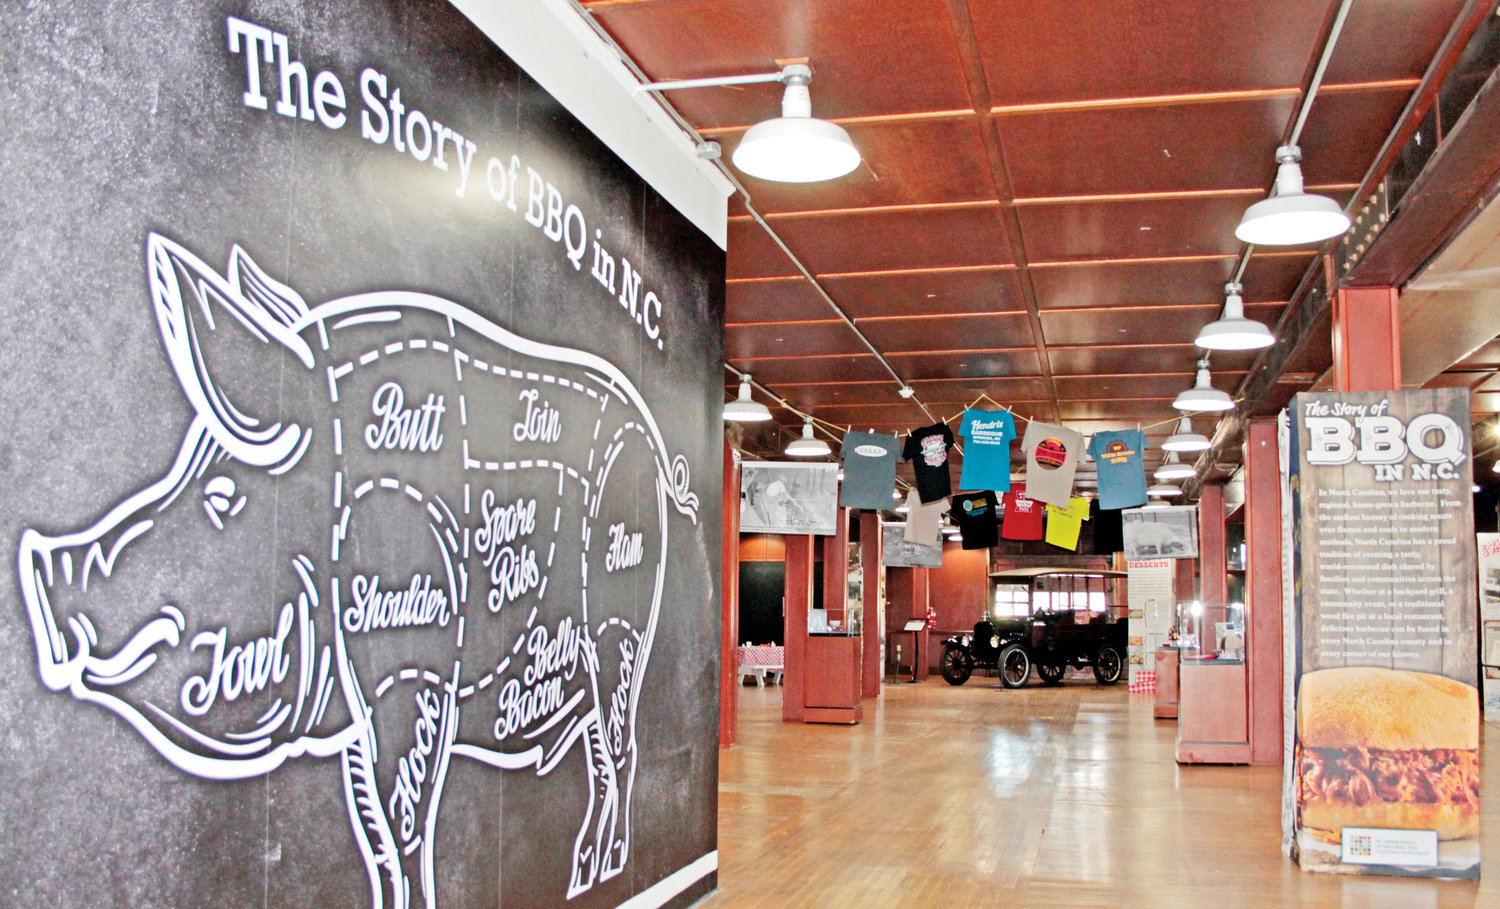 'The Story of BBQ in North Carolina' is on display at the N.C. Transportation Museum in Spencer. It explores the emergence of hog cultivation and food made from them as a centerpiece of many gatherings..